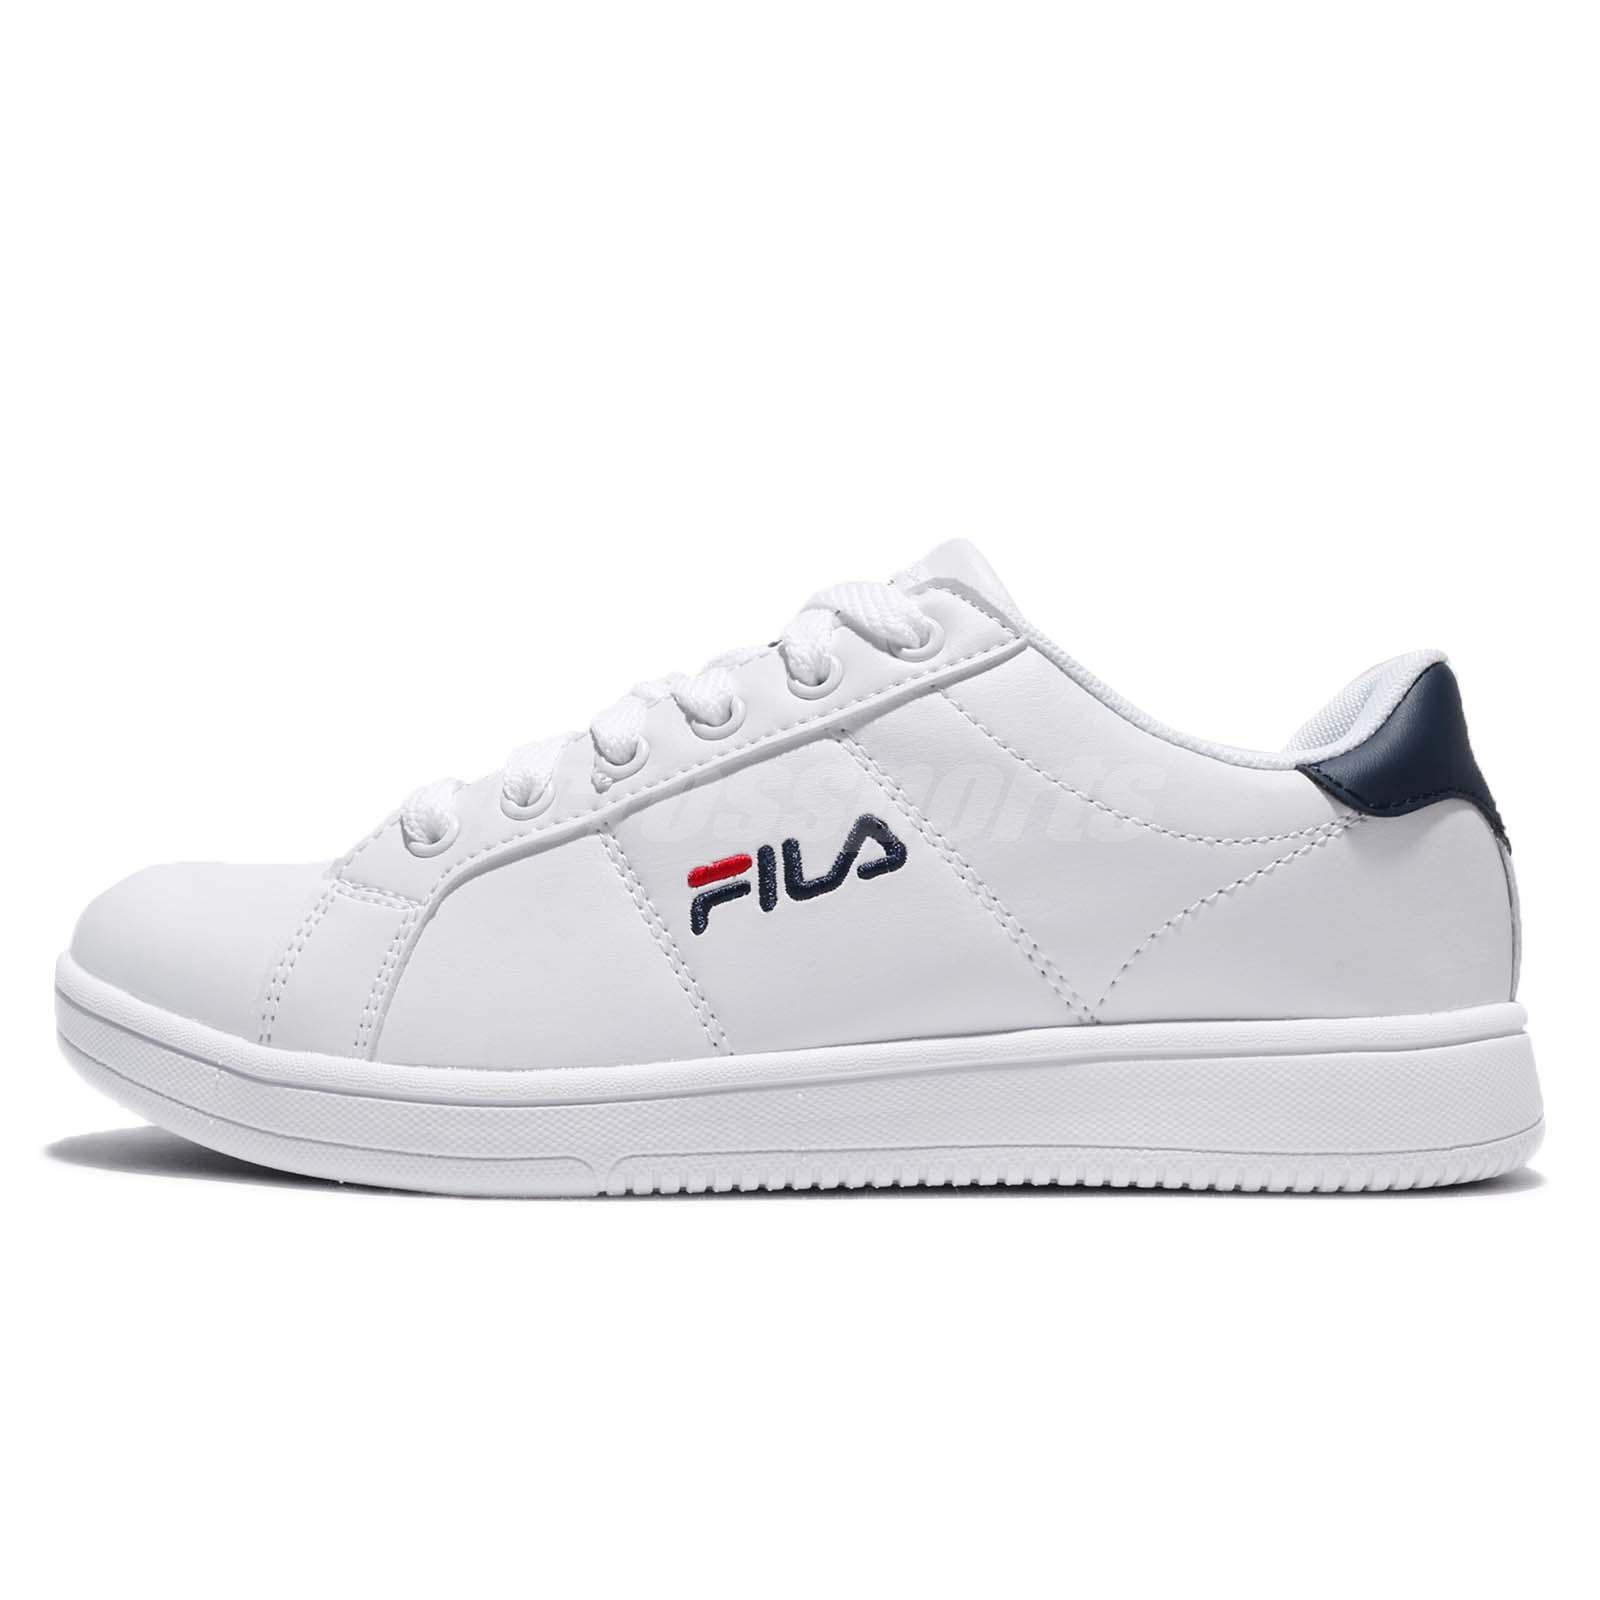 Fila Casual Shoes White